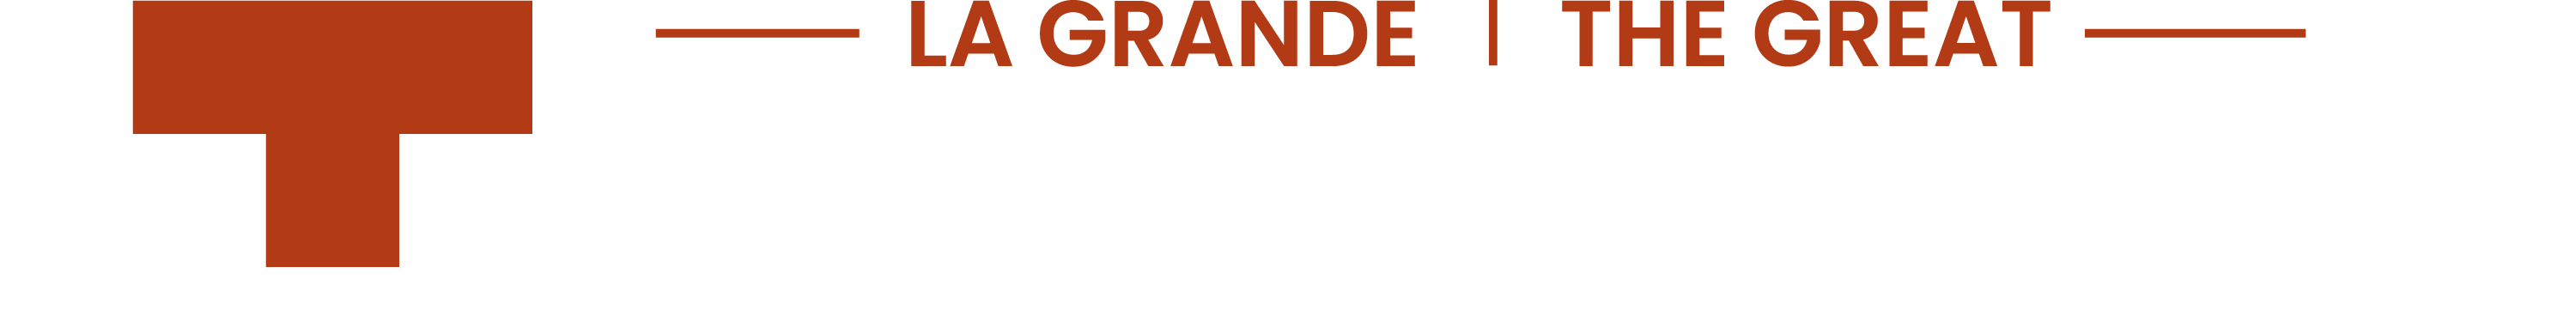 La Grande transition - The Great Transition 2021